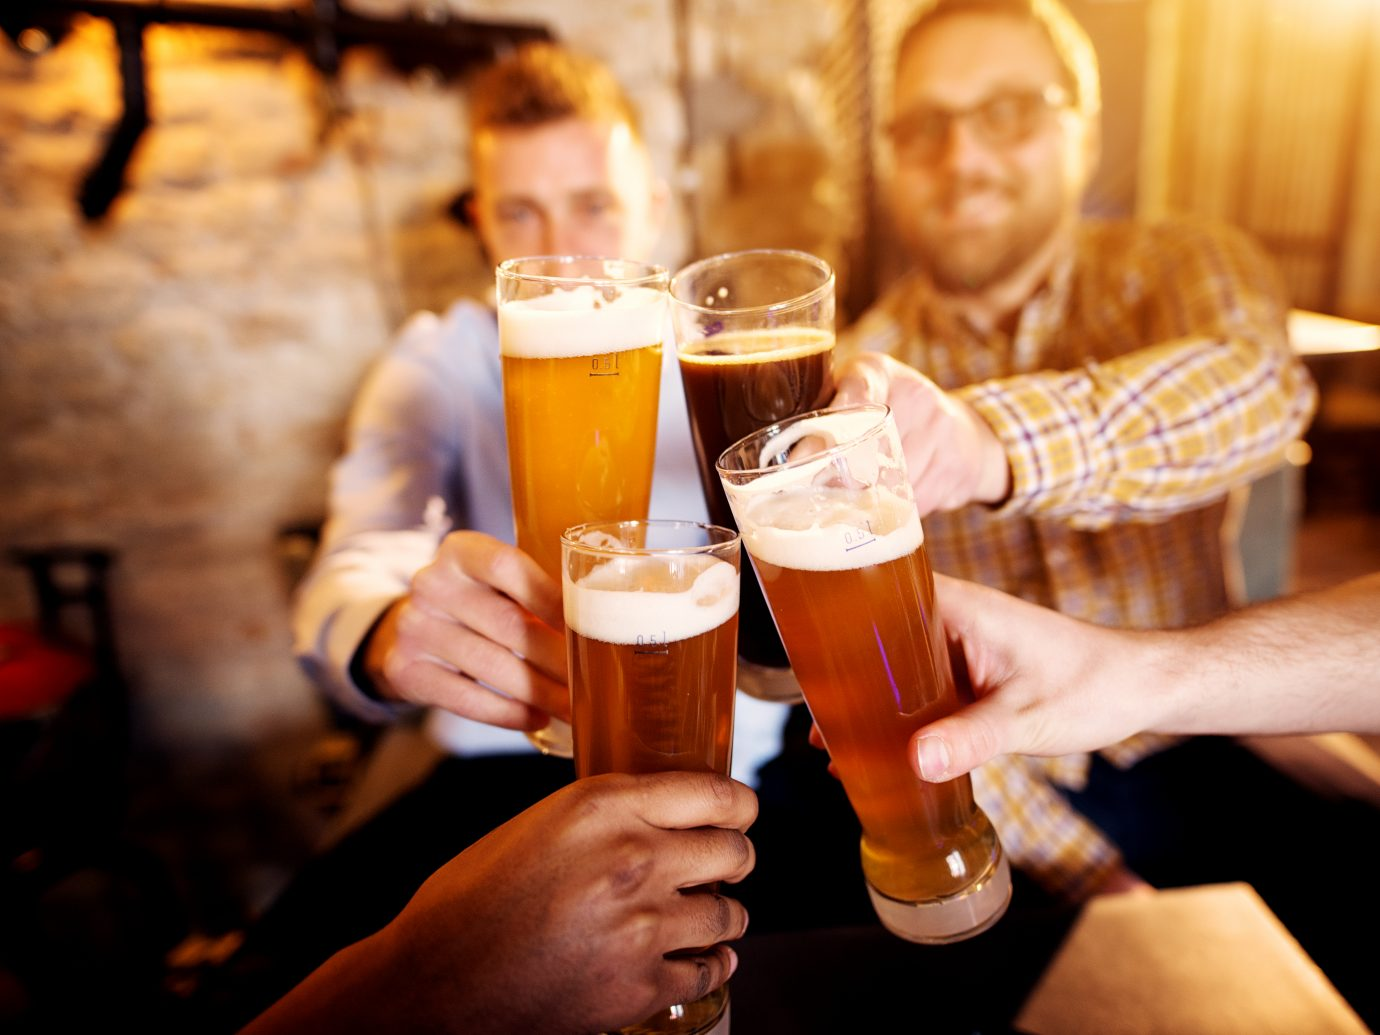 A group of young men clinking glasses with a beer in the sunny pub.